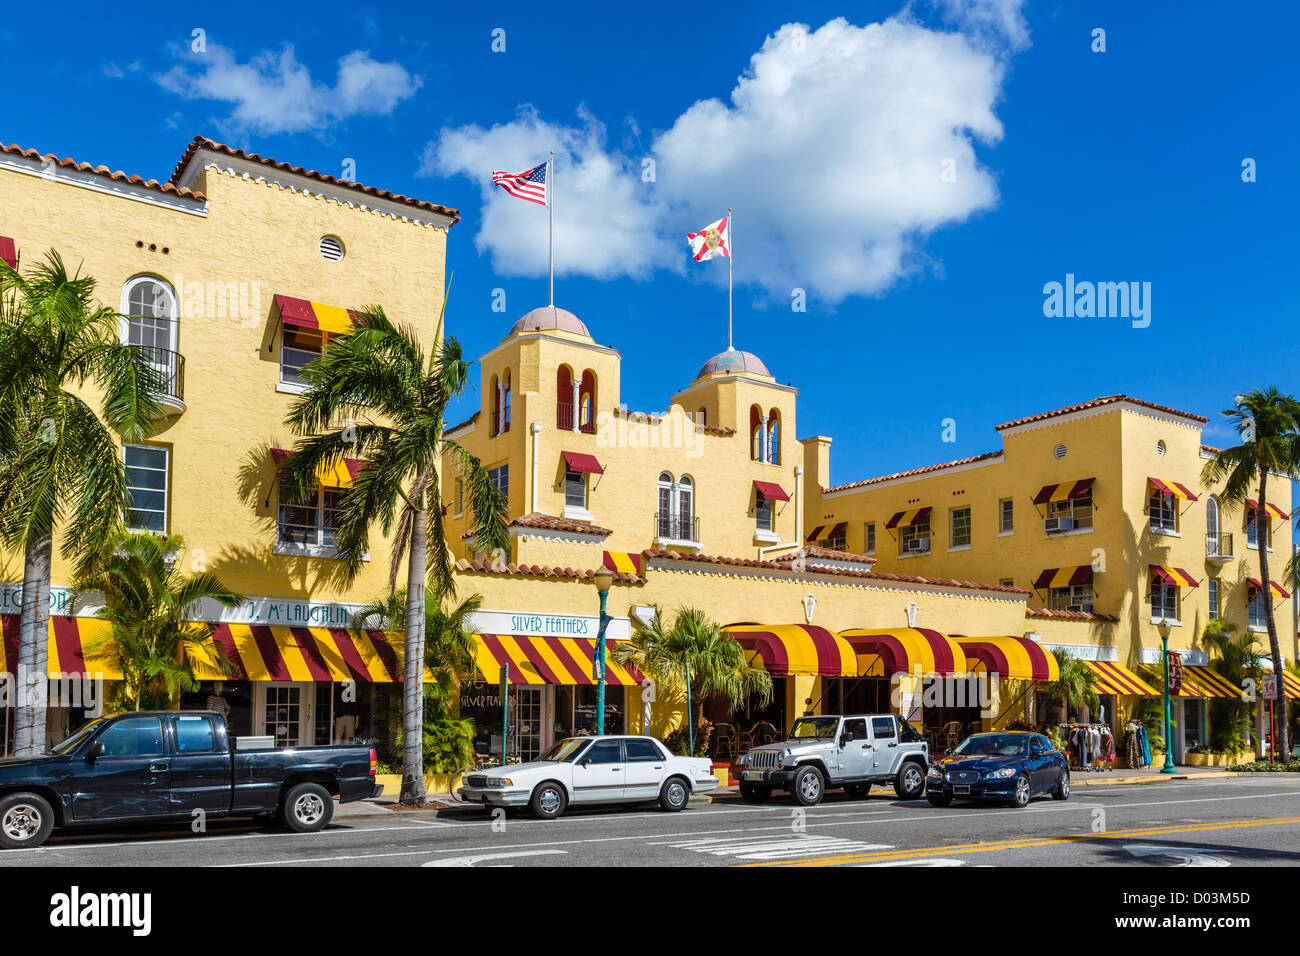 The historic Colony Hotel on Atlantic Avenue in historic downtown Delray Beach,  Treasure Coast, Florida, USA - Stock Image